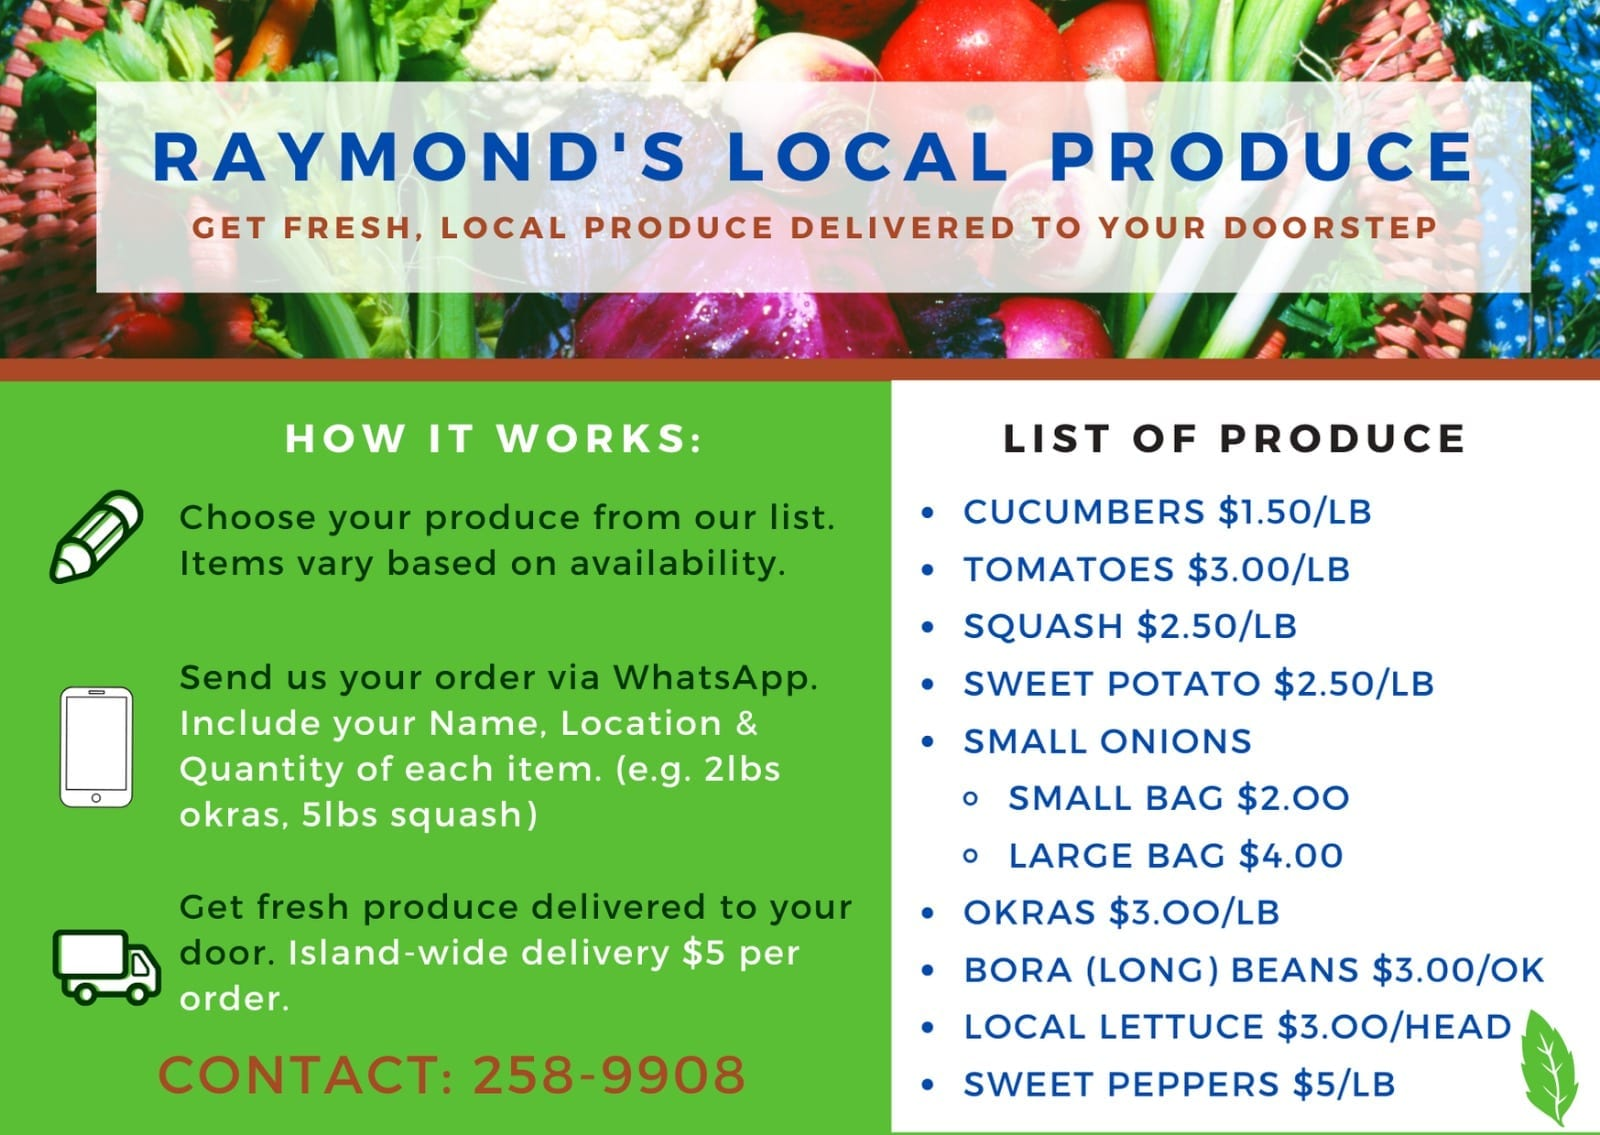 raymonds-local-produce-april9th2020